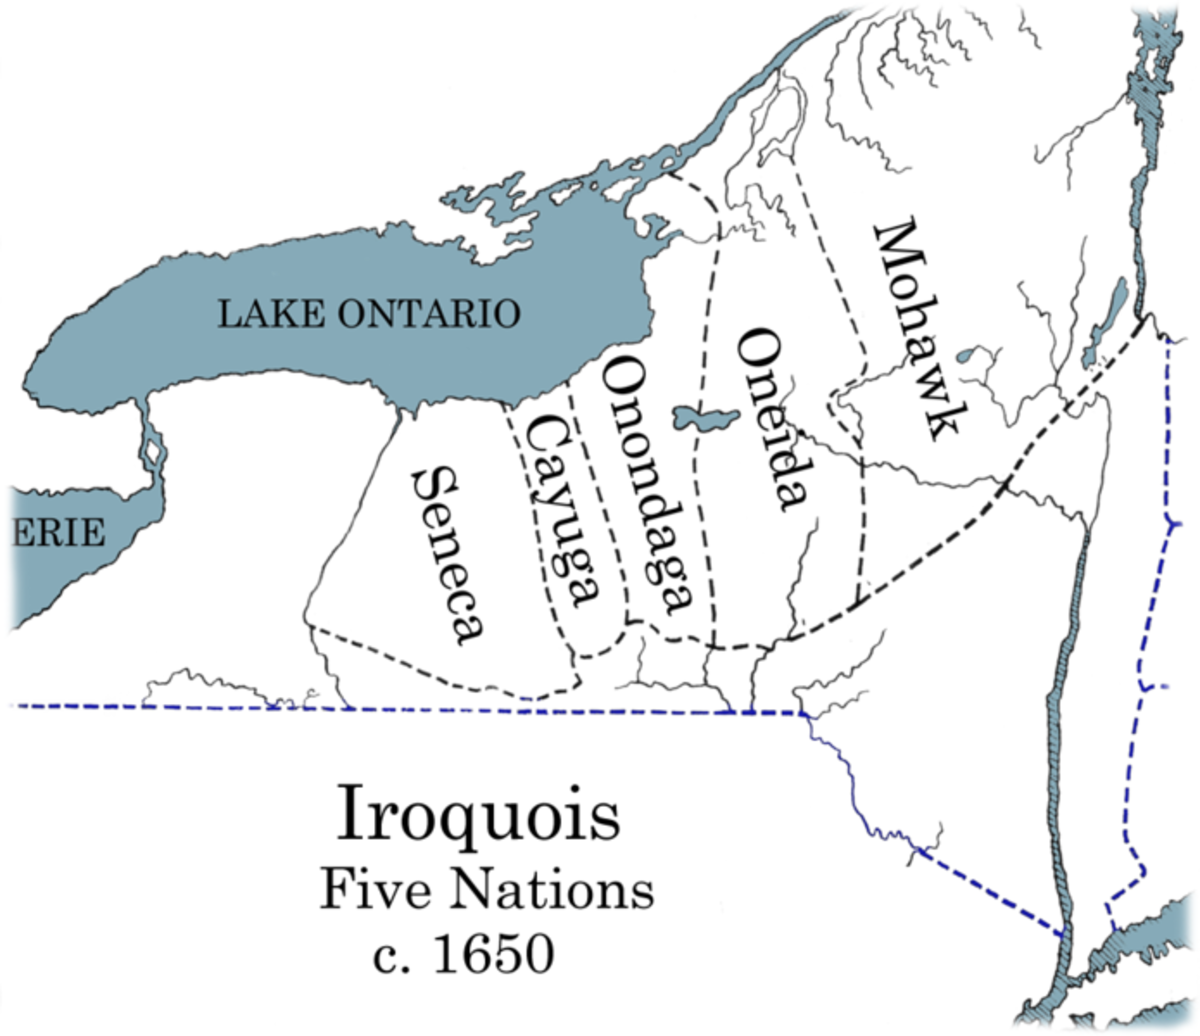 The Iroquois Five Nations Confederacy